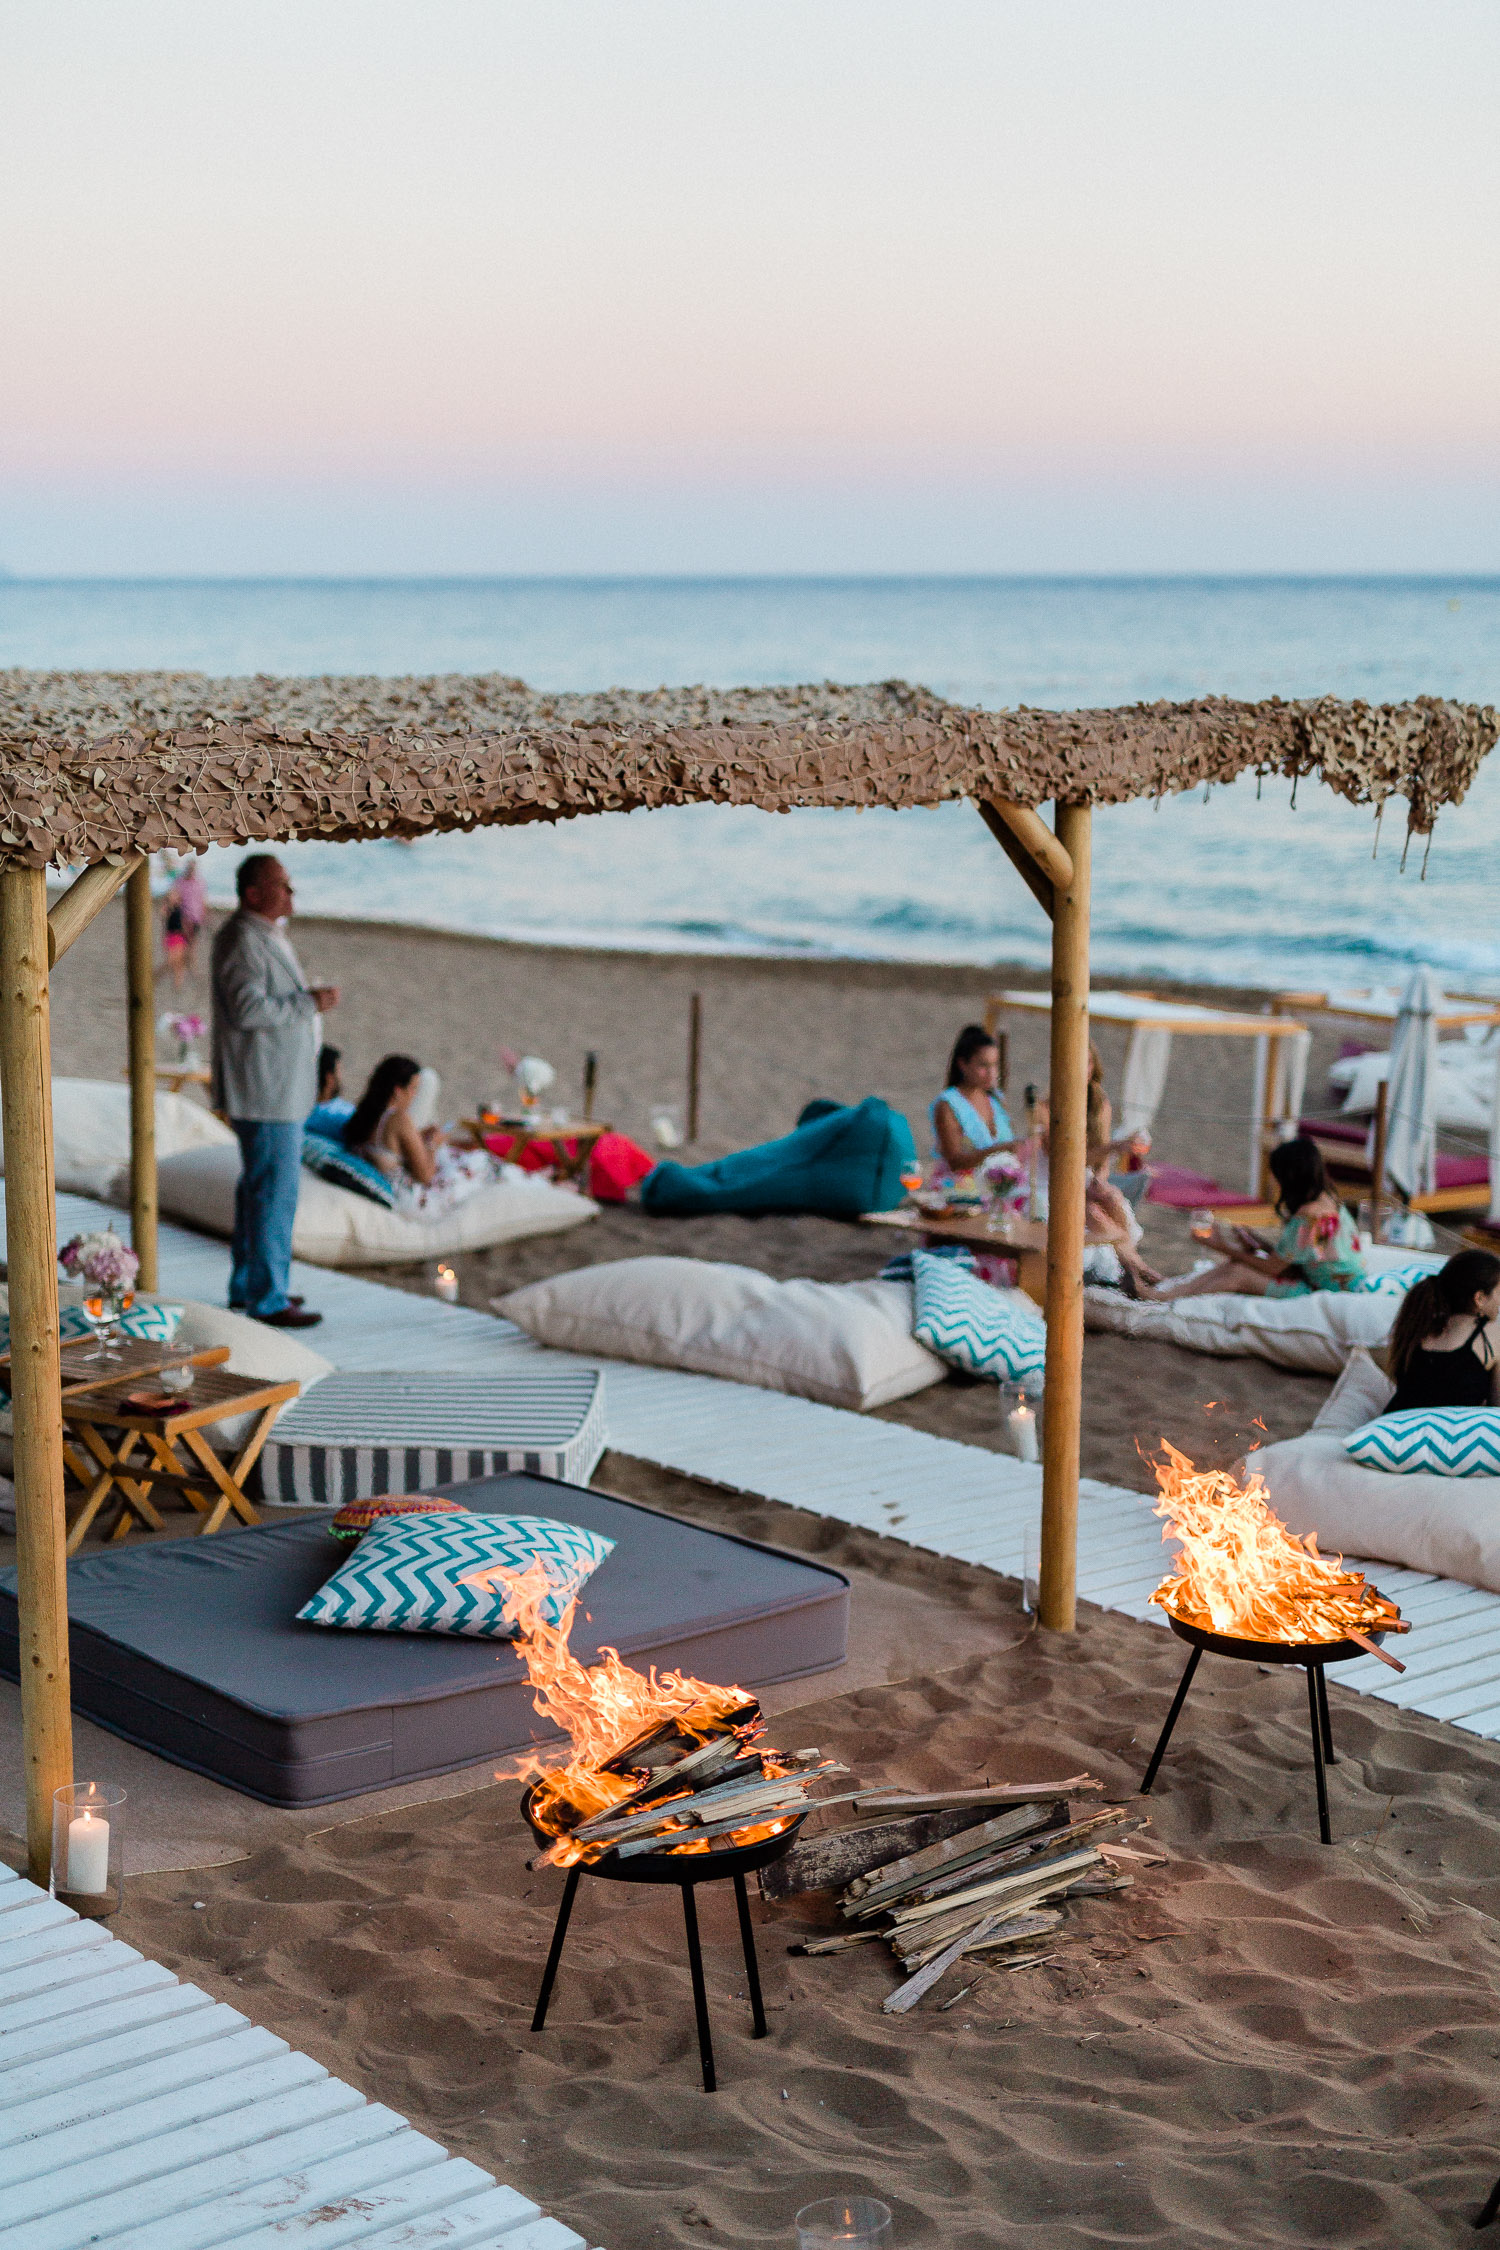 Lounging area at the beach.